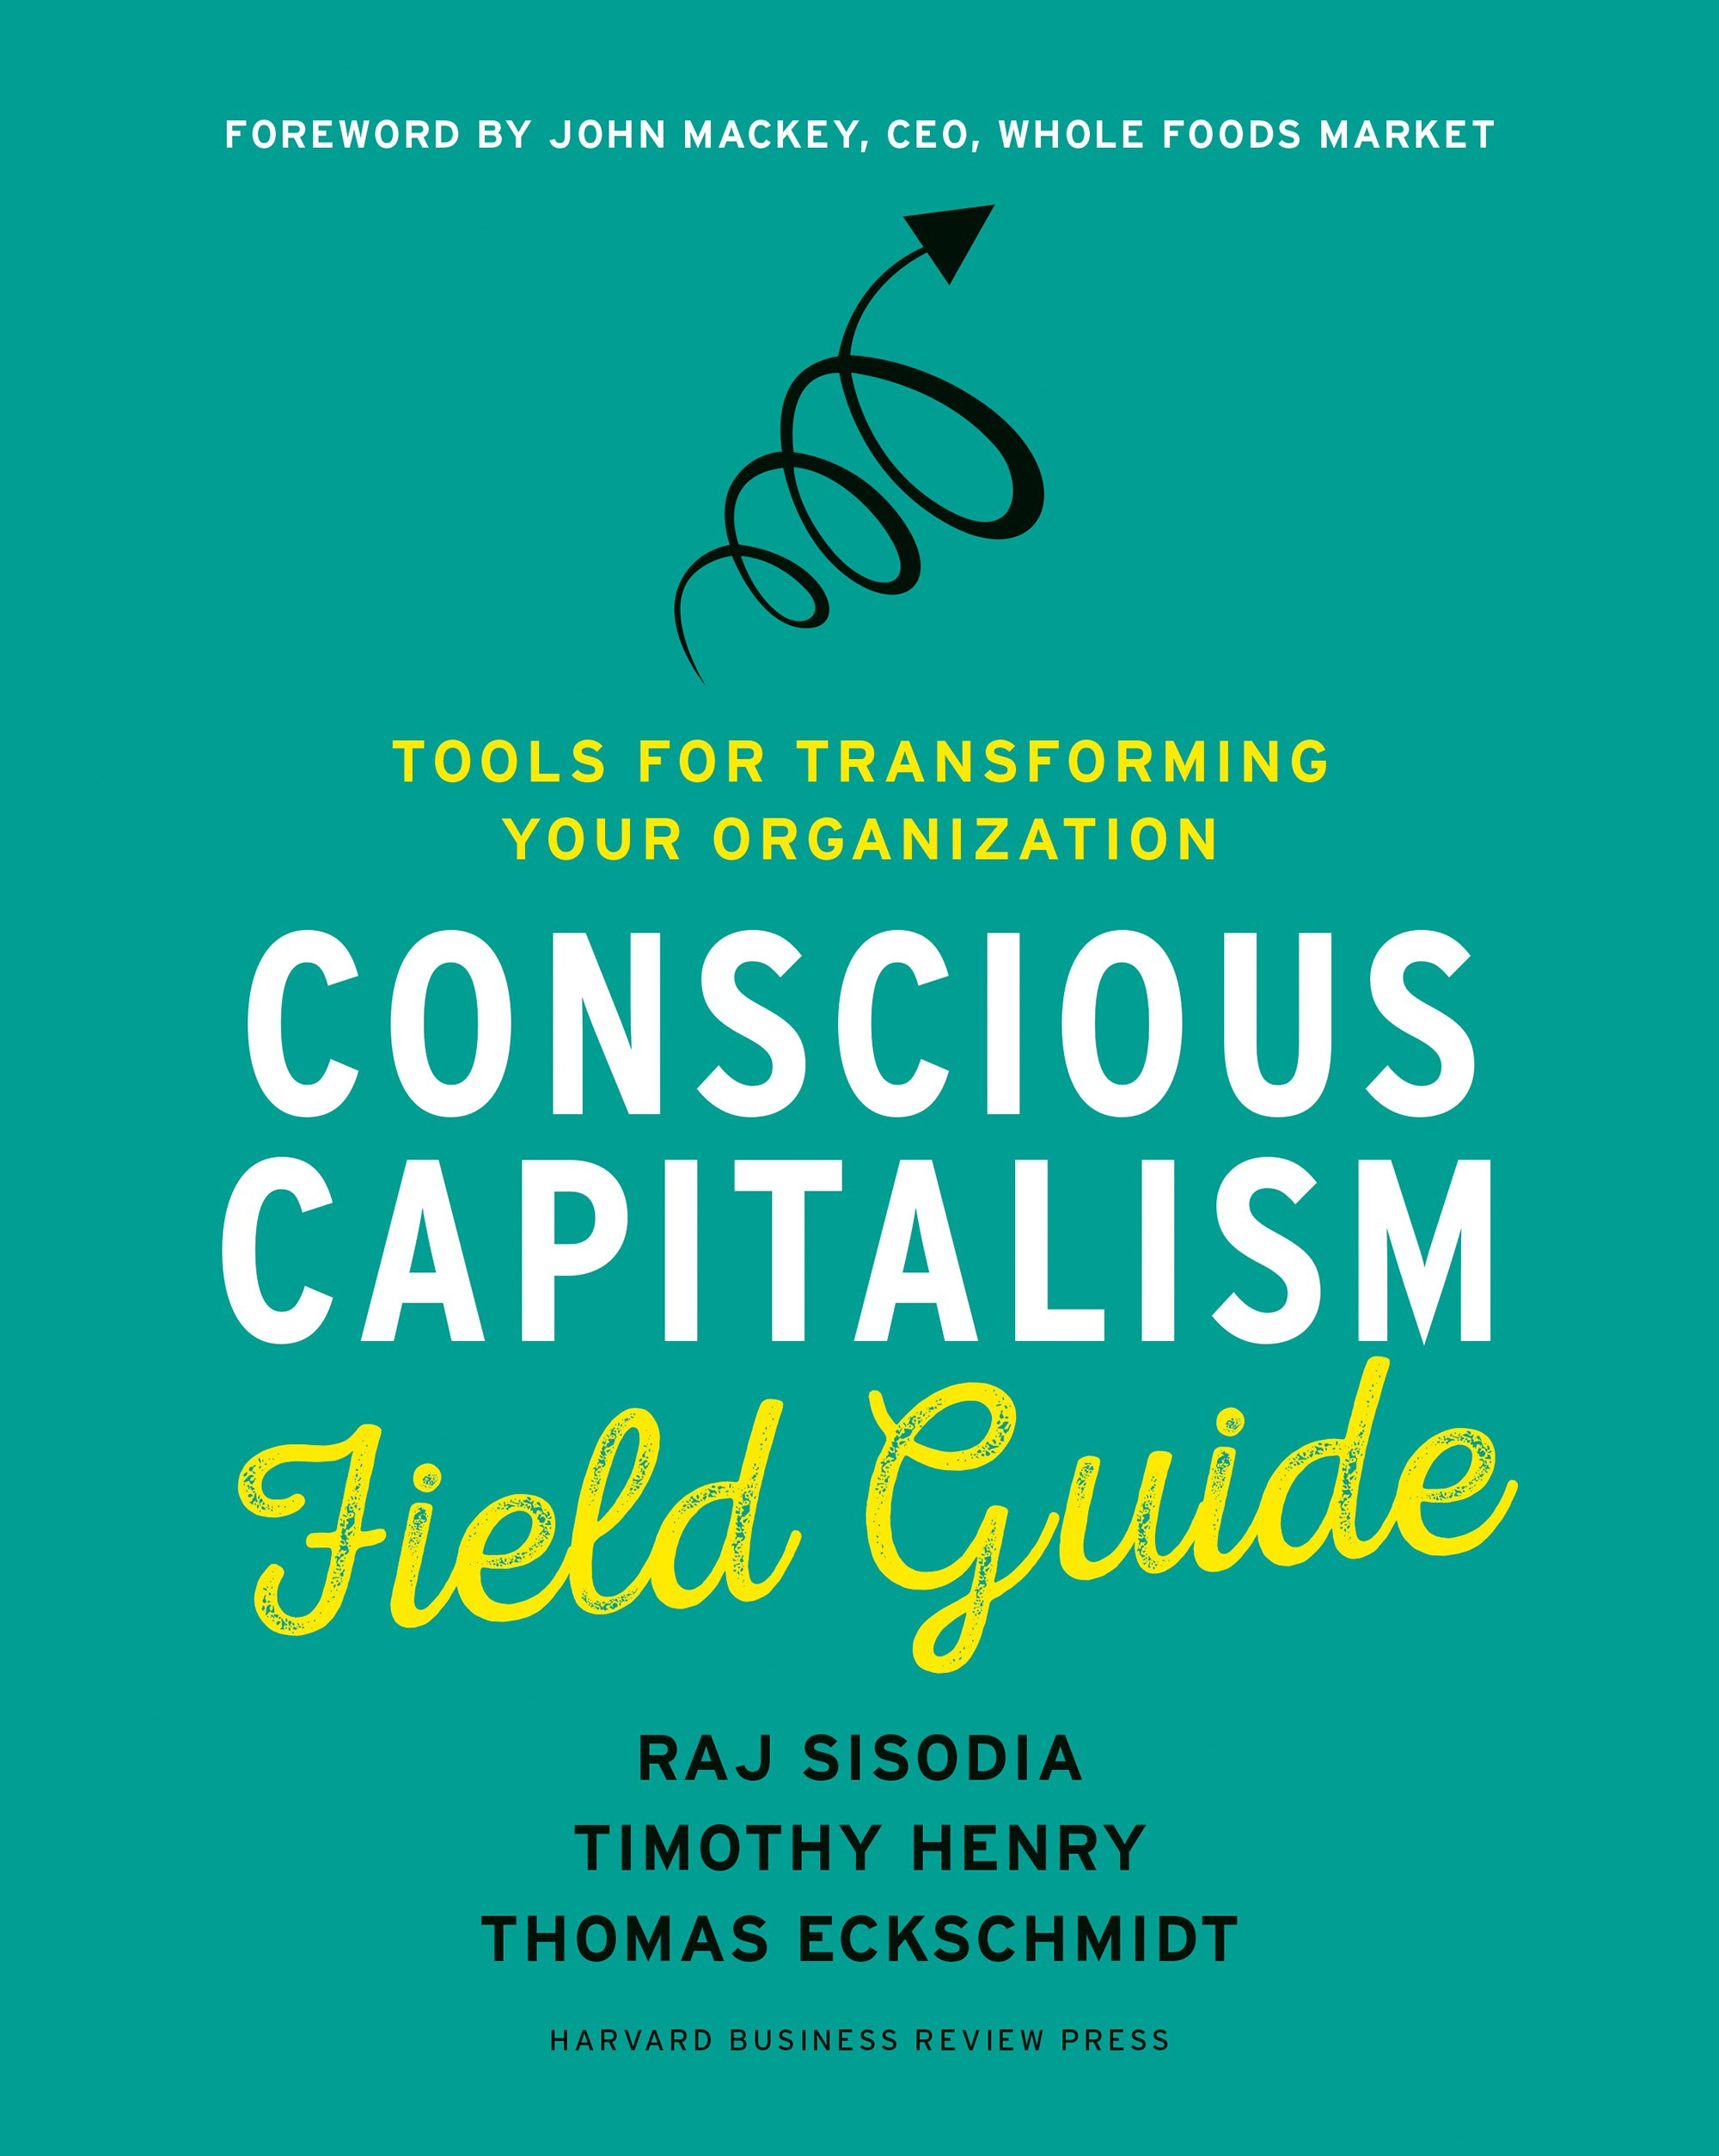 The Conscious Capitalism Field Guide.